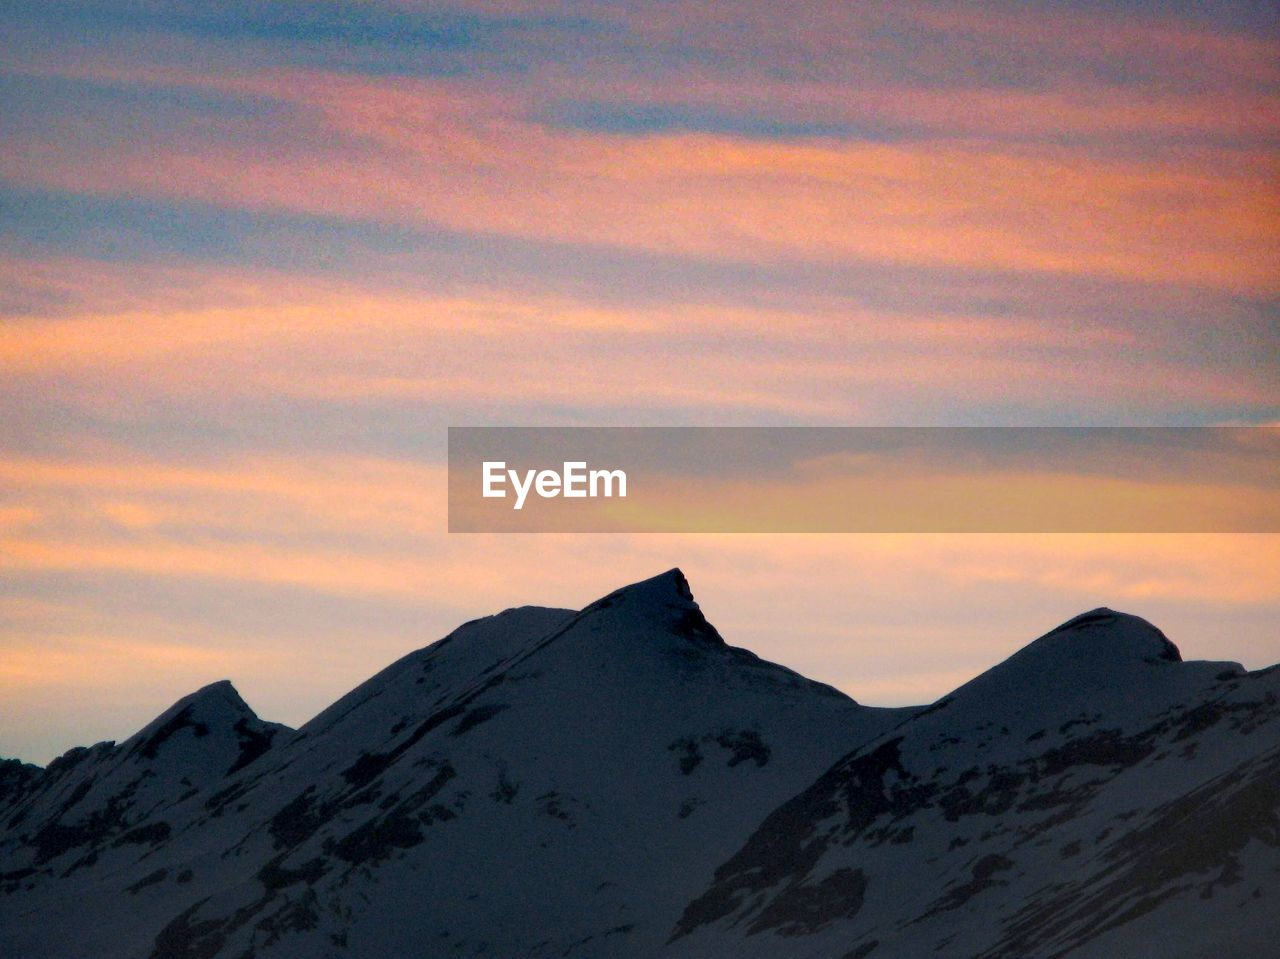 sky, scenics - nature, cloud - sky, mountain, beauty in nature, sunset, cold temperature, winter, snow, tranquility, tranquil scene, nature, no people, snowcapped mountain, idyllic, mountain peak, non-urban scene, mountain range, outdoors